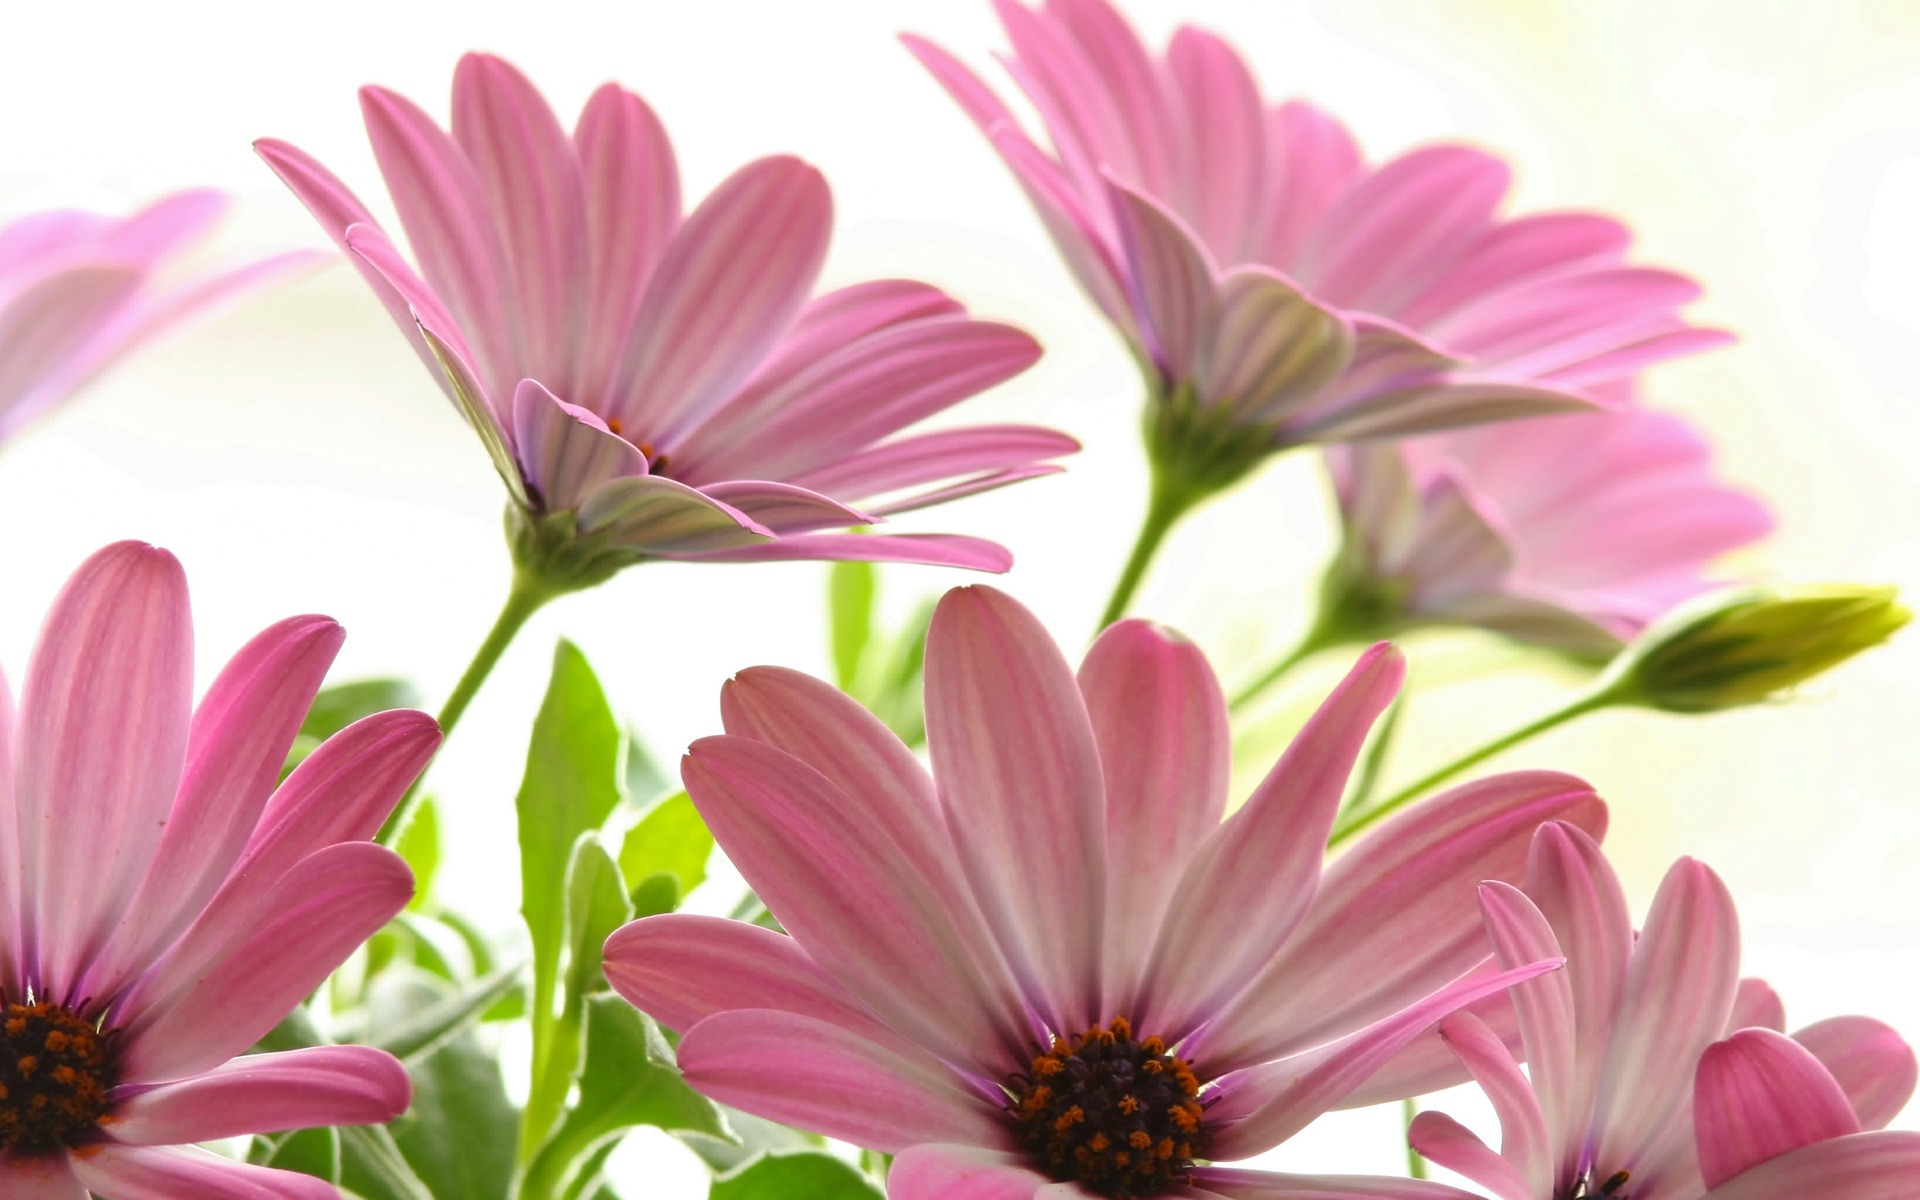 Pink Daisies Wallpaper Flowers Nature Wallpapers In Jpg Format For